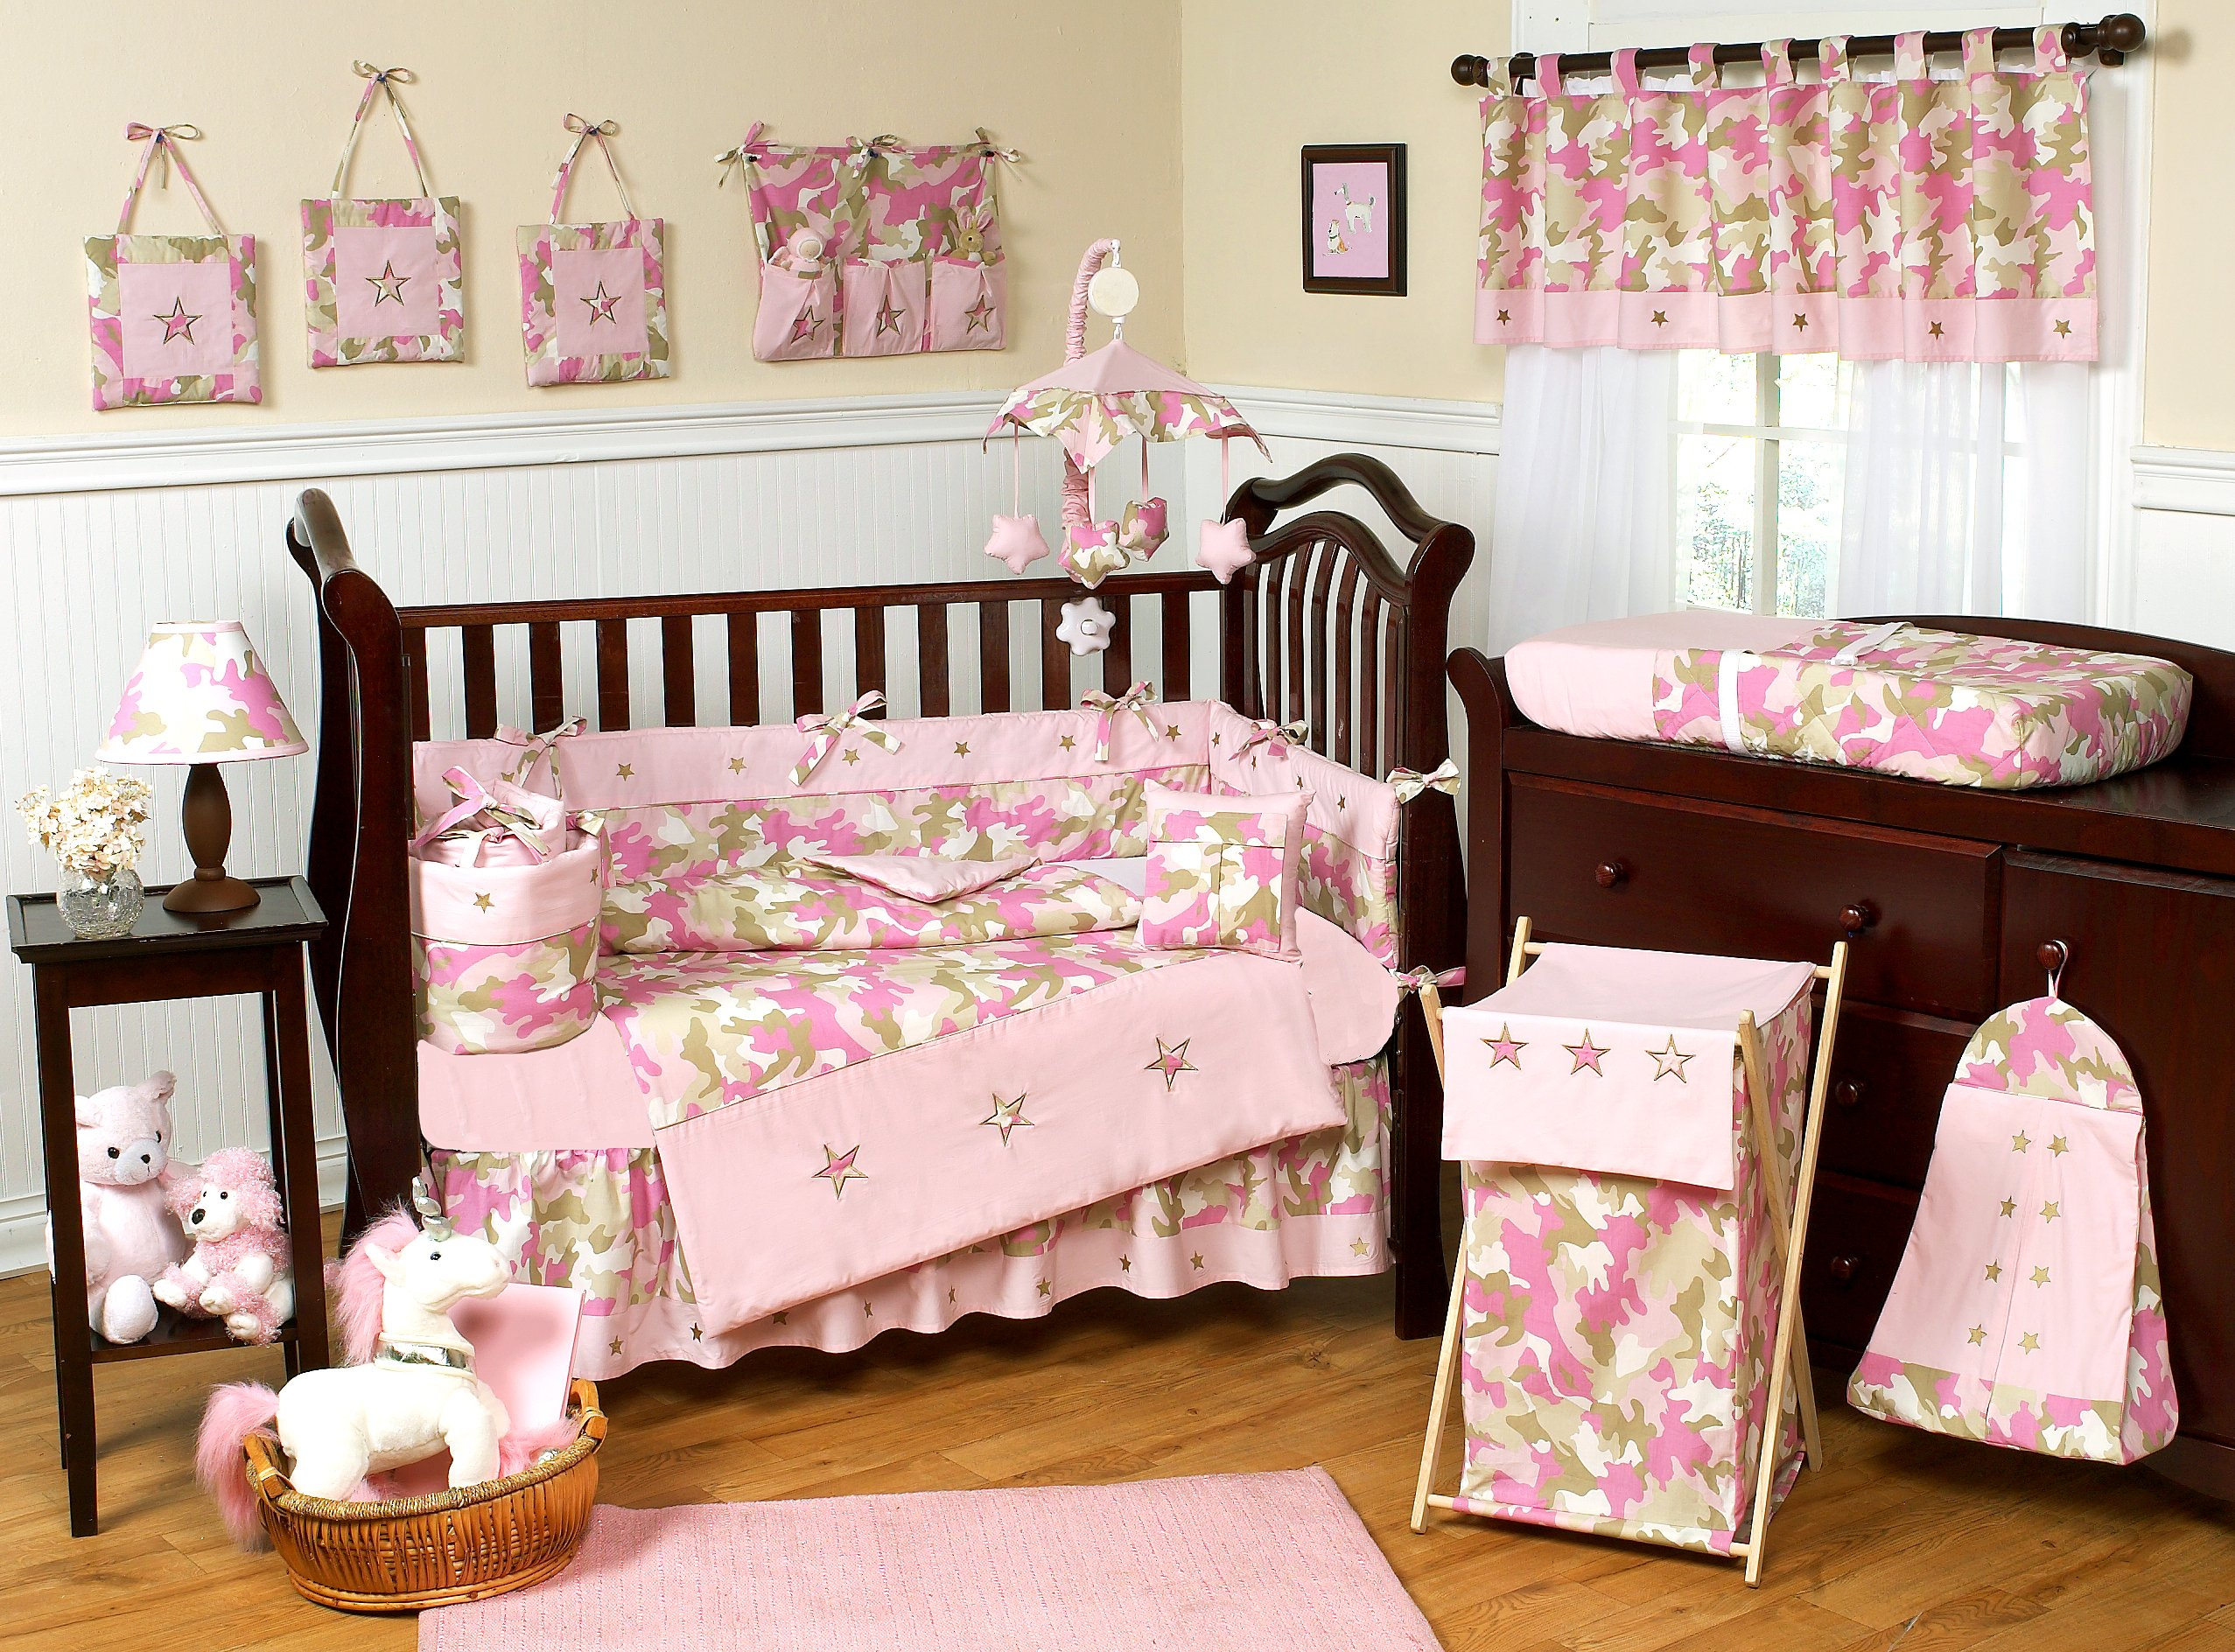 Camouflage Pink Baby Bedding Camo Nursery Decor and Crib Sets 2554x1888